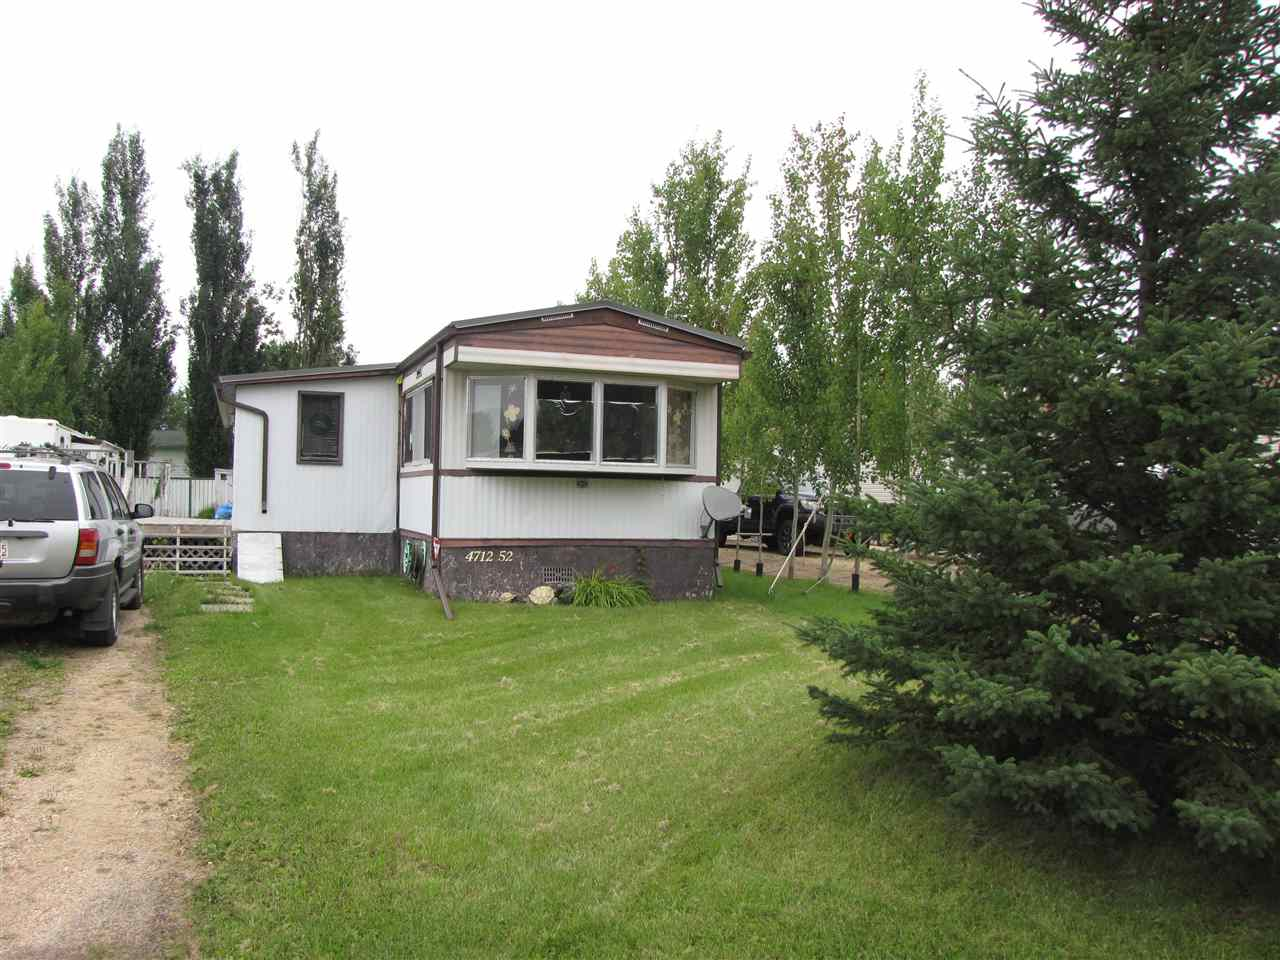 MLS® listing #E4169851 for sale located at 4712 52 Ave